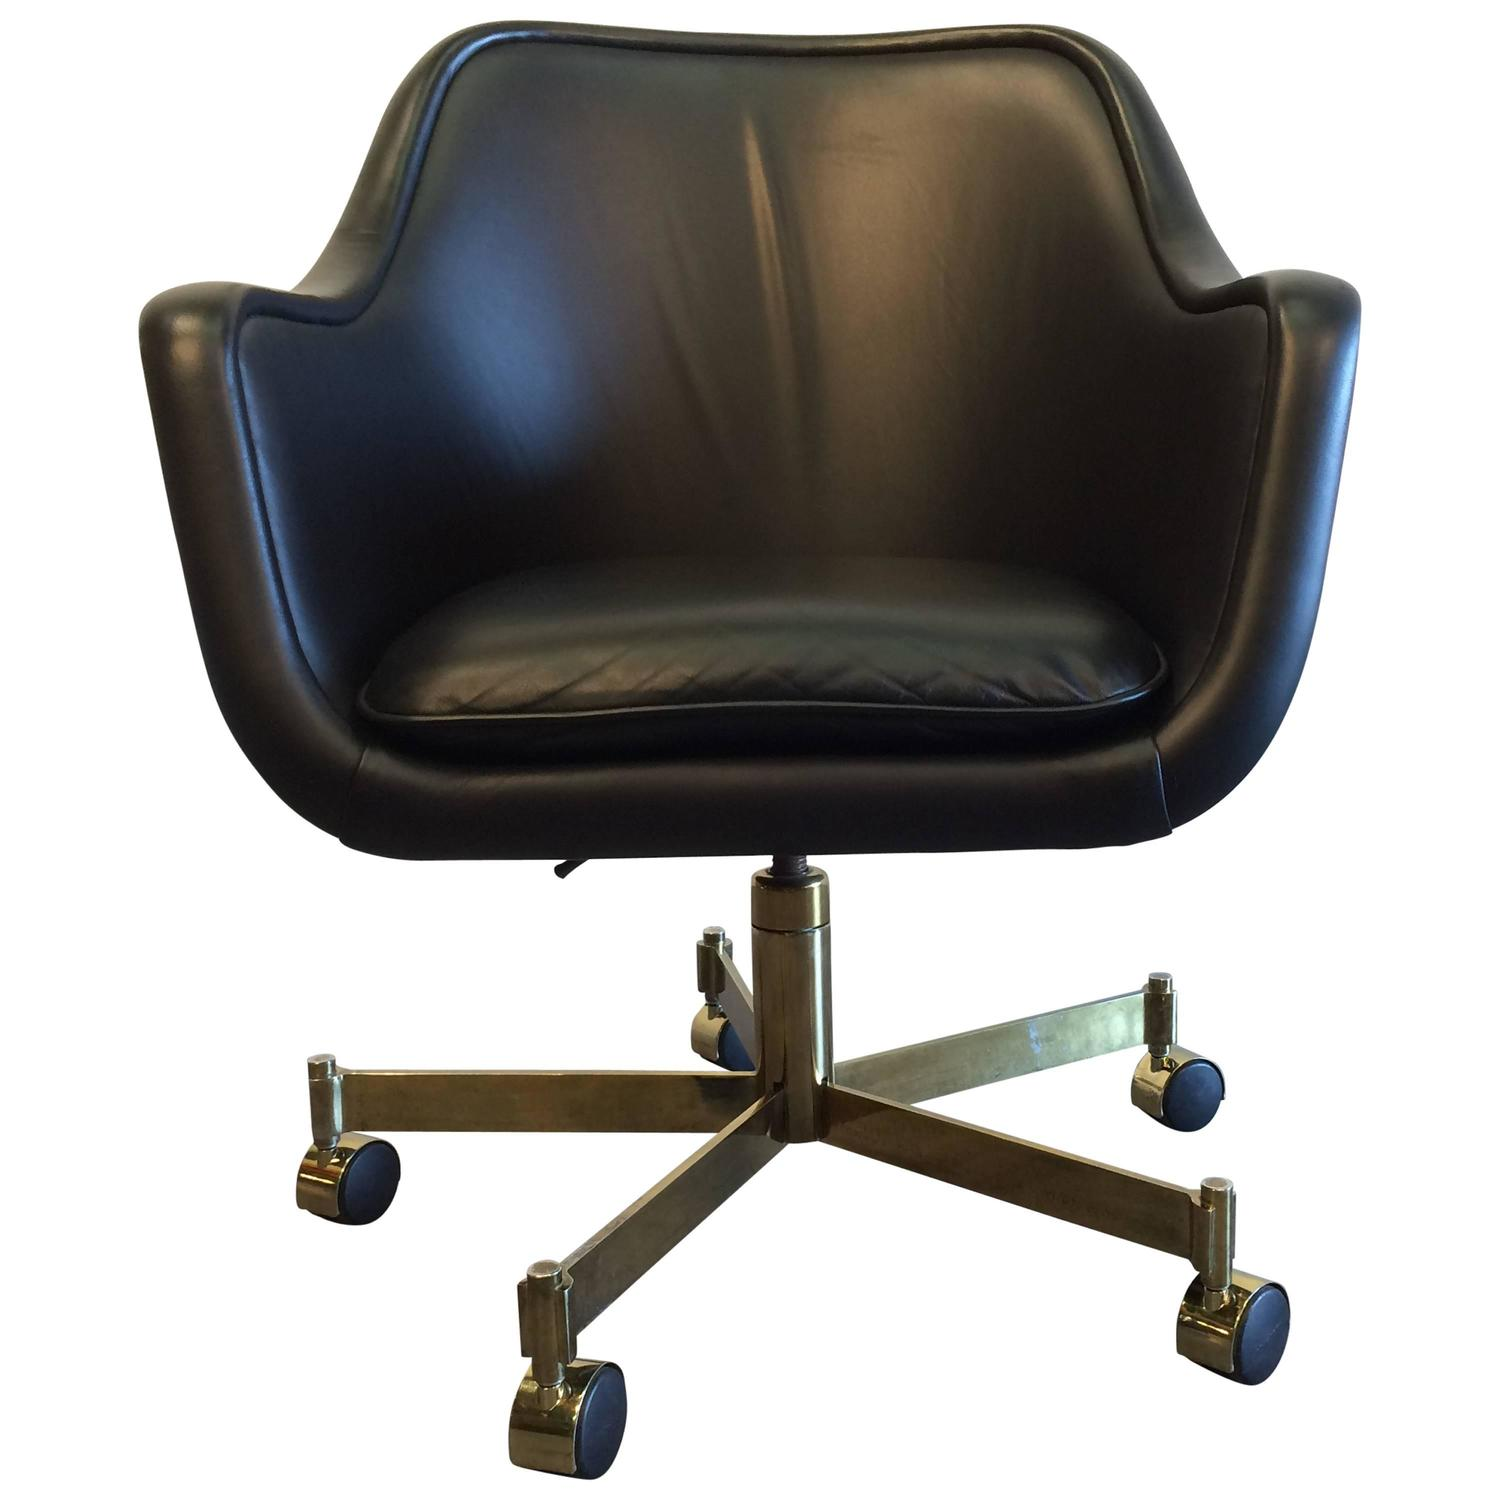 Desk Chair by Ward Bennett Black Leather and Brass Finish at 1stdibs